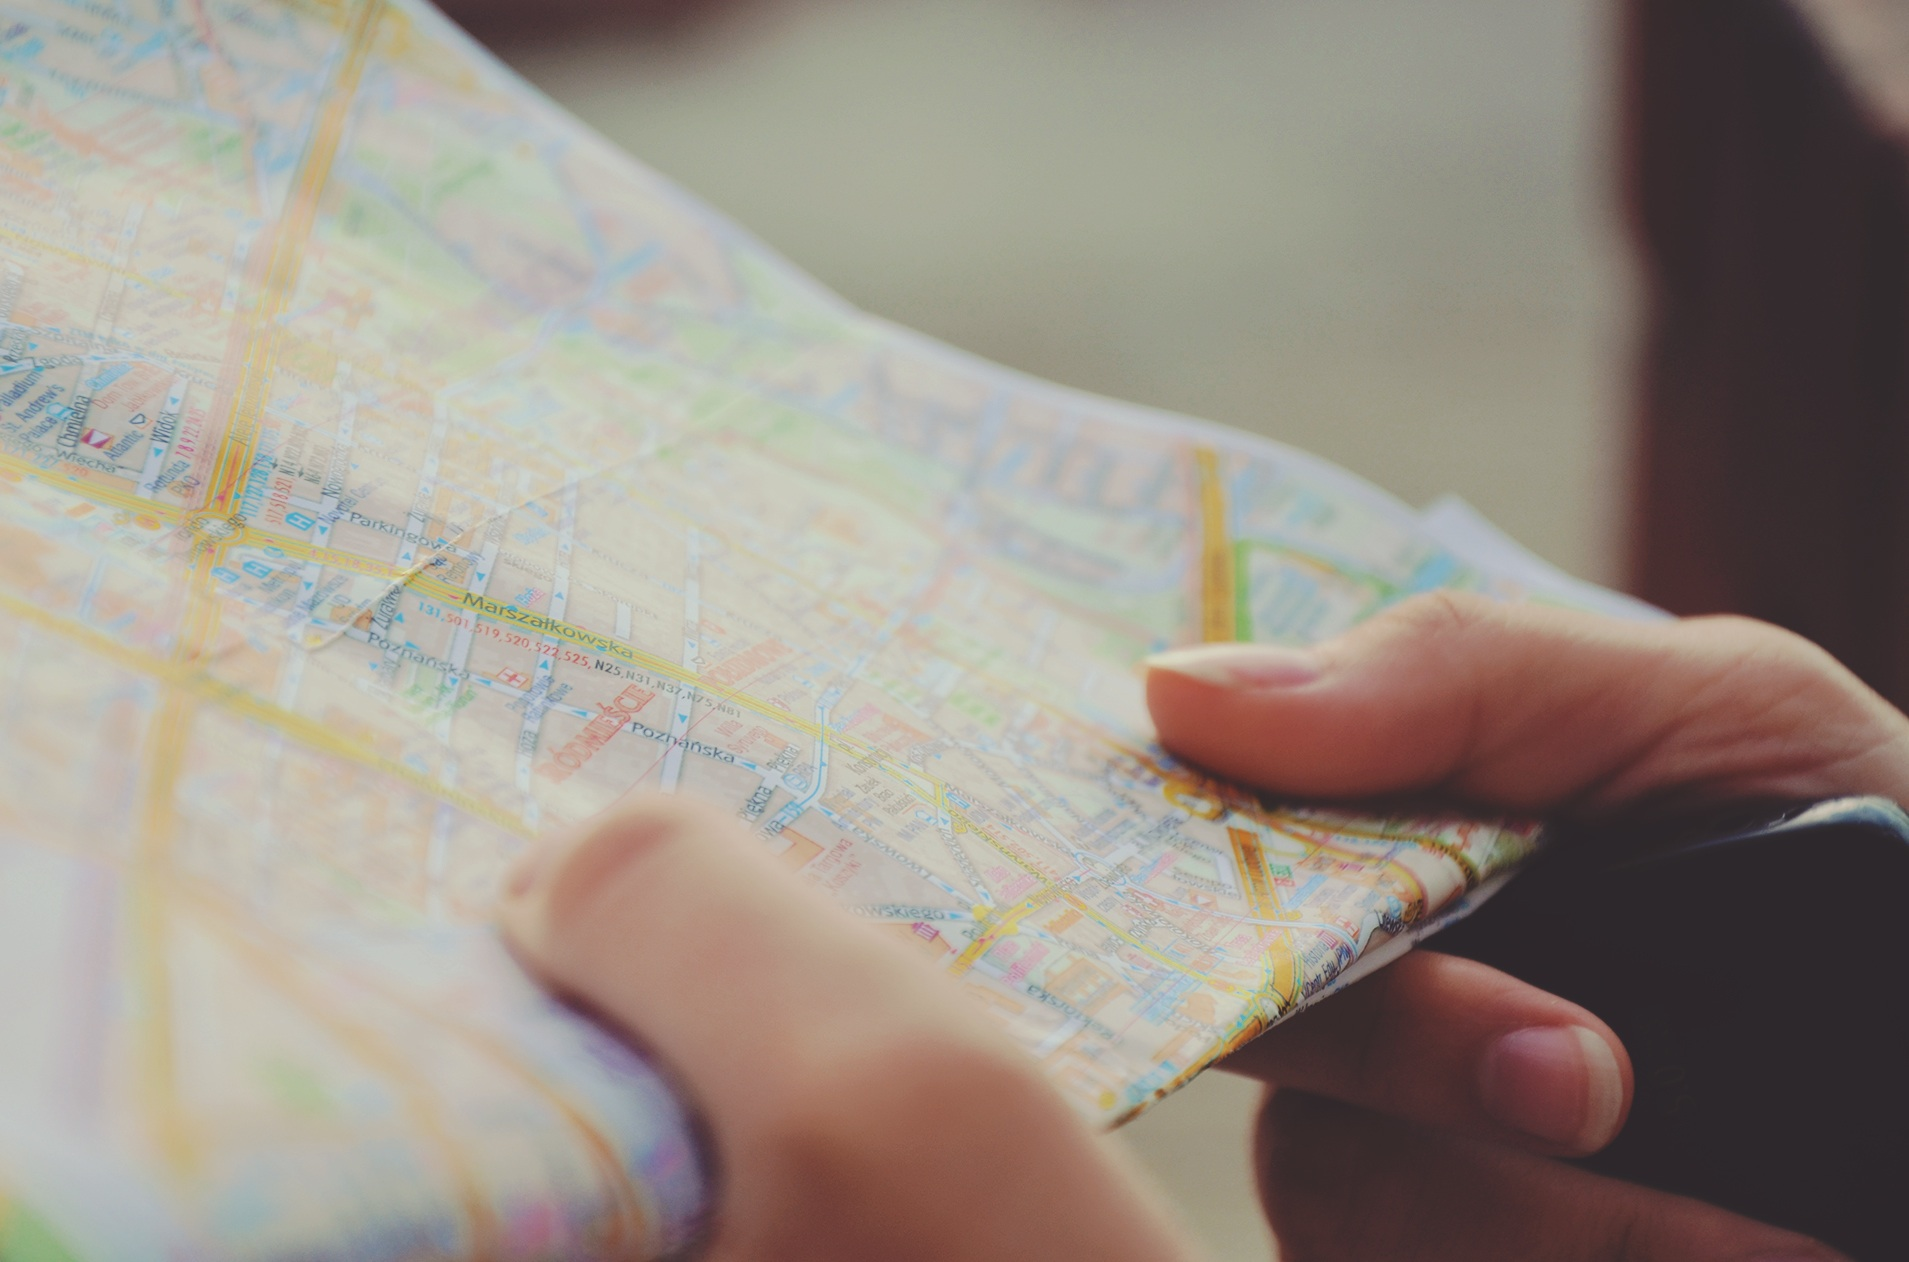 4 rookie local SEO mistakes you don't want to make